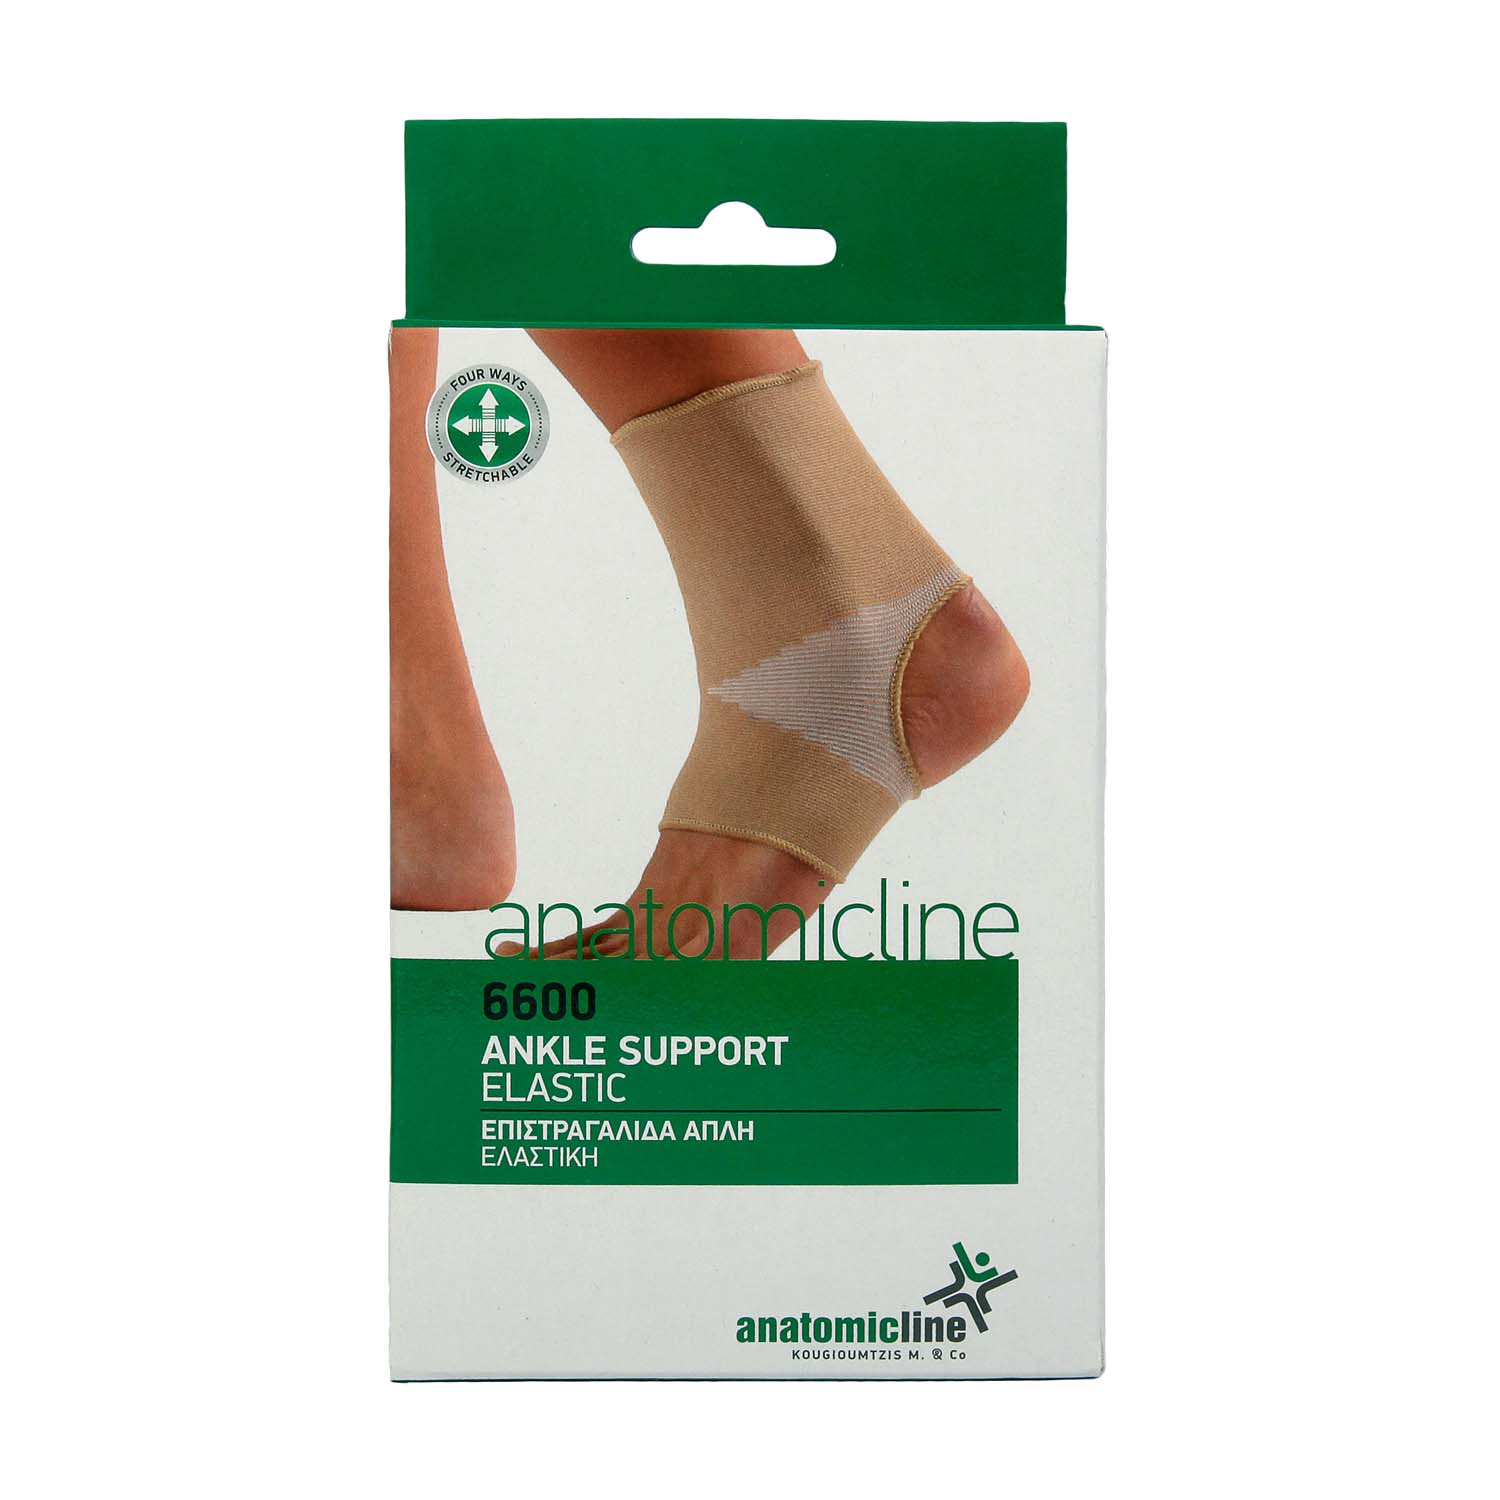 Ankle support - elastic